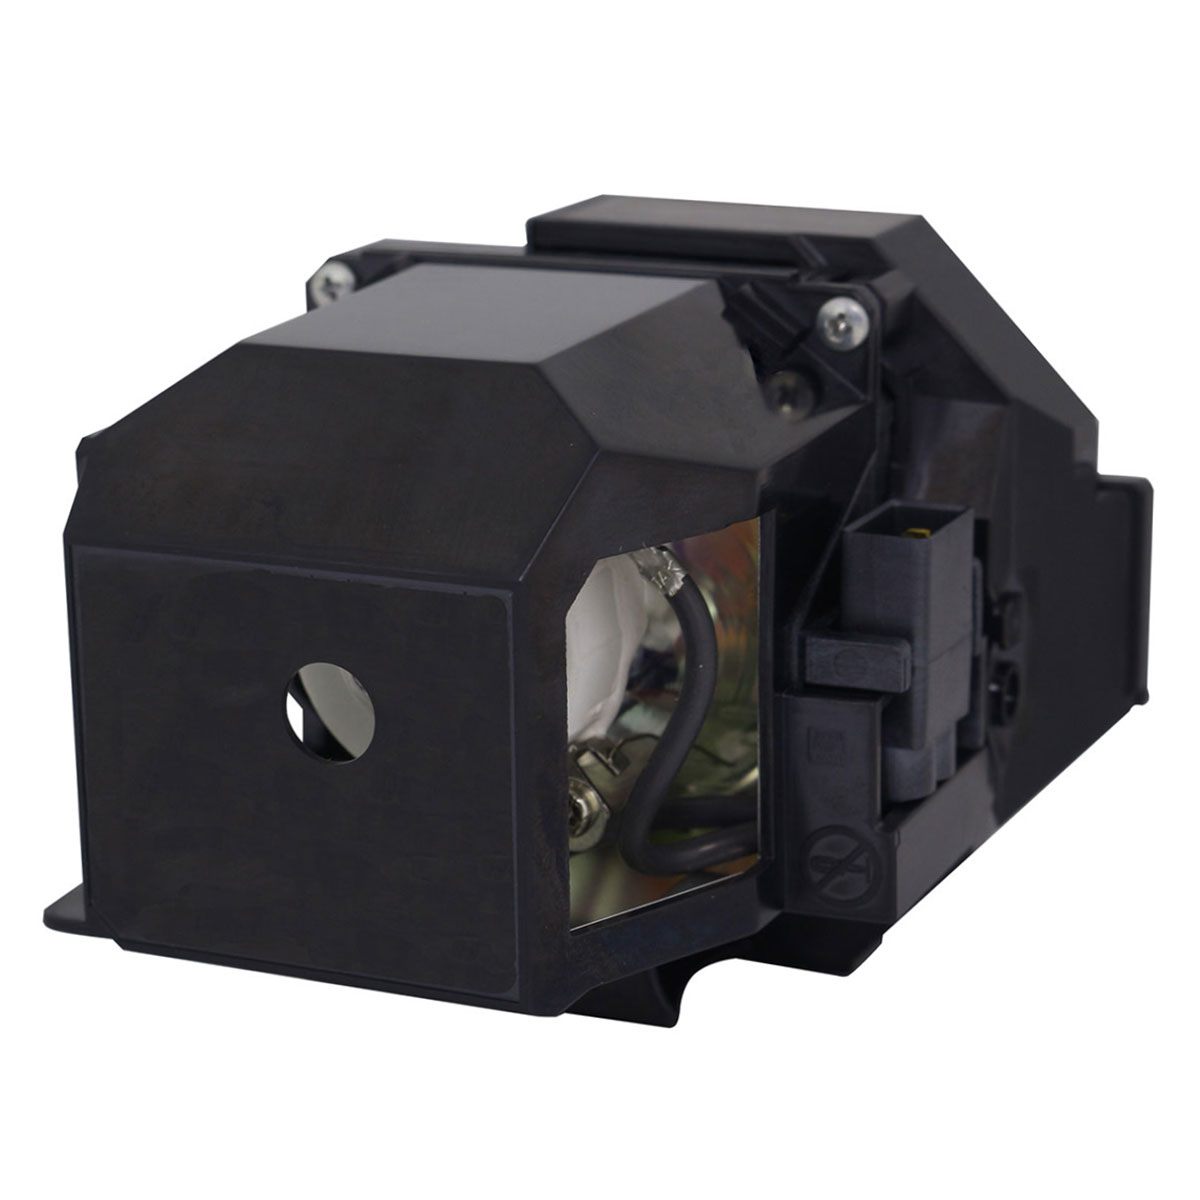 Lutema Platinum for Epson EB-S41 Projector Lamp with Housing (Original Philips Bulb Inside) - image 4 of 5